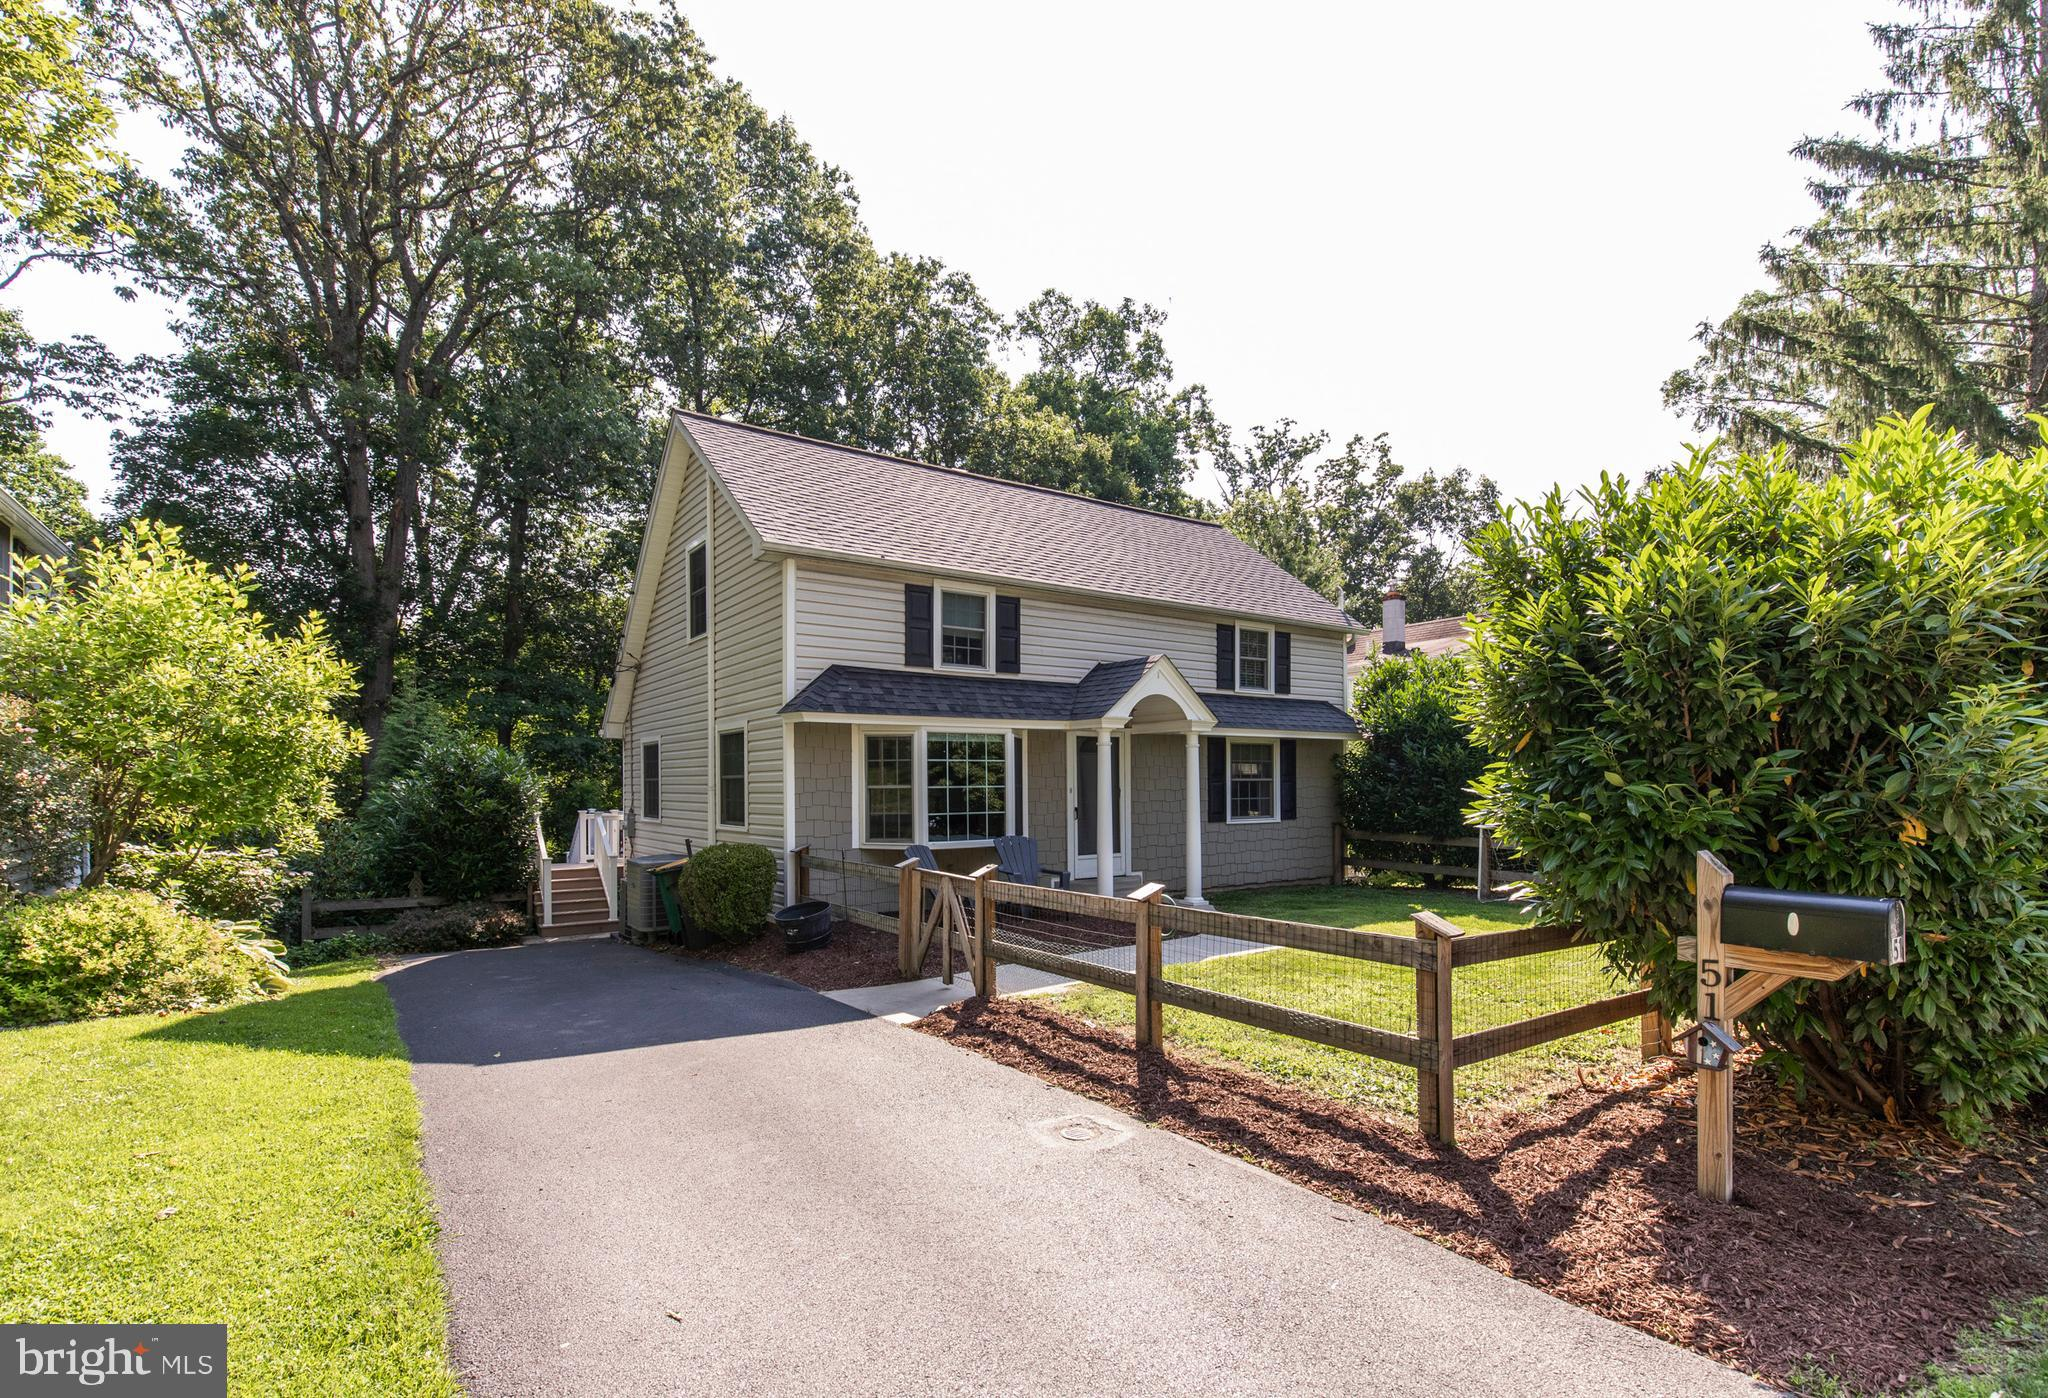 This immaculate cape cod invites comfort with 4 bedrooms, 2 baths and stylish finishes. You'll also enjoy a perfect setting for relaxing and entertaining on the spacious Trex deck and the private fence-in yard. Plenty of natural light flows throughout this home which features a bay window with window seat in the living room; an intimate dining room with chandelier and sliding glass door the deck; newer kitchen with 42~ white cabinetry, granite countertops, subway tile backsplash, stainless steel appliances, gas stove, recessed lighting, dishwasher and a built-in space saver microwave. The walkout, daylight basement provides additional living space with family room and a laundry/storage room. There are two main level bedrooms that provide access to the updated hall bath with vanity, tub, mirrored medicine cabinet and lighted wall sconces. Upstairs you will find two additional spacious bedrooms and full bath. Other special highlights include a 2-zoned HVAC system, 3 car parking in the private driveway, 200 amp electric, front and back fenced-in yards and an ideal location within a very close proximity to Berwyn Train Station, shops and restaurants.